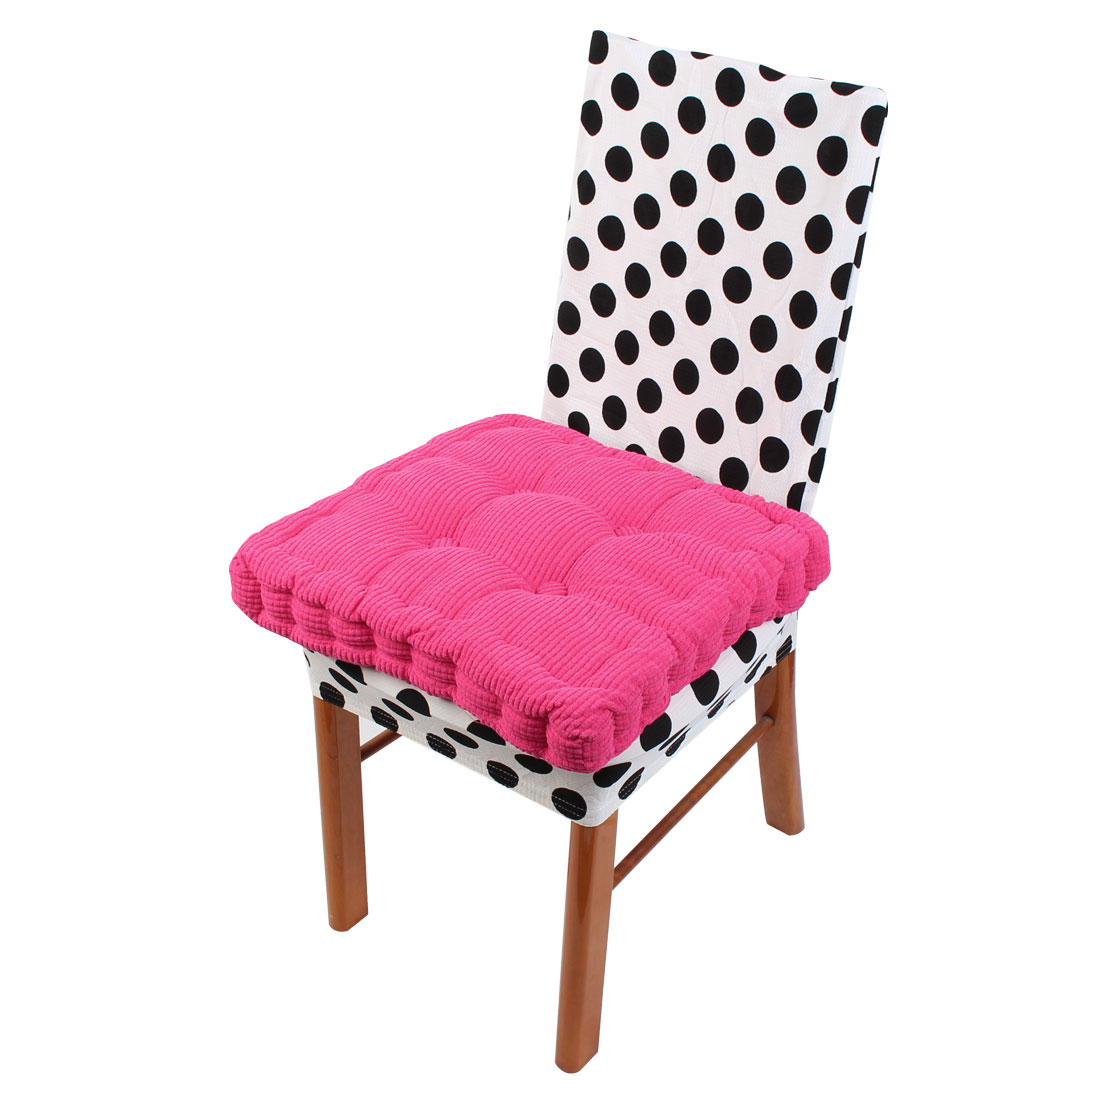 Household Corduroy Square Shape Thicken Chair Cushions Fuchsia 43.5cm x 43.5cm